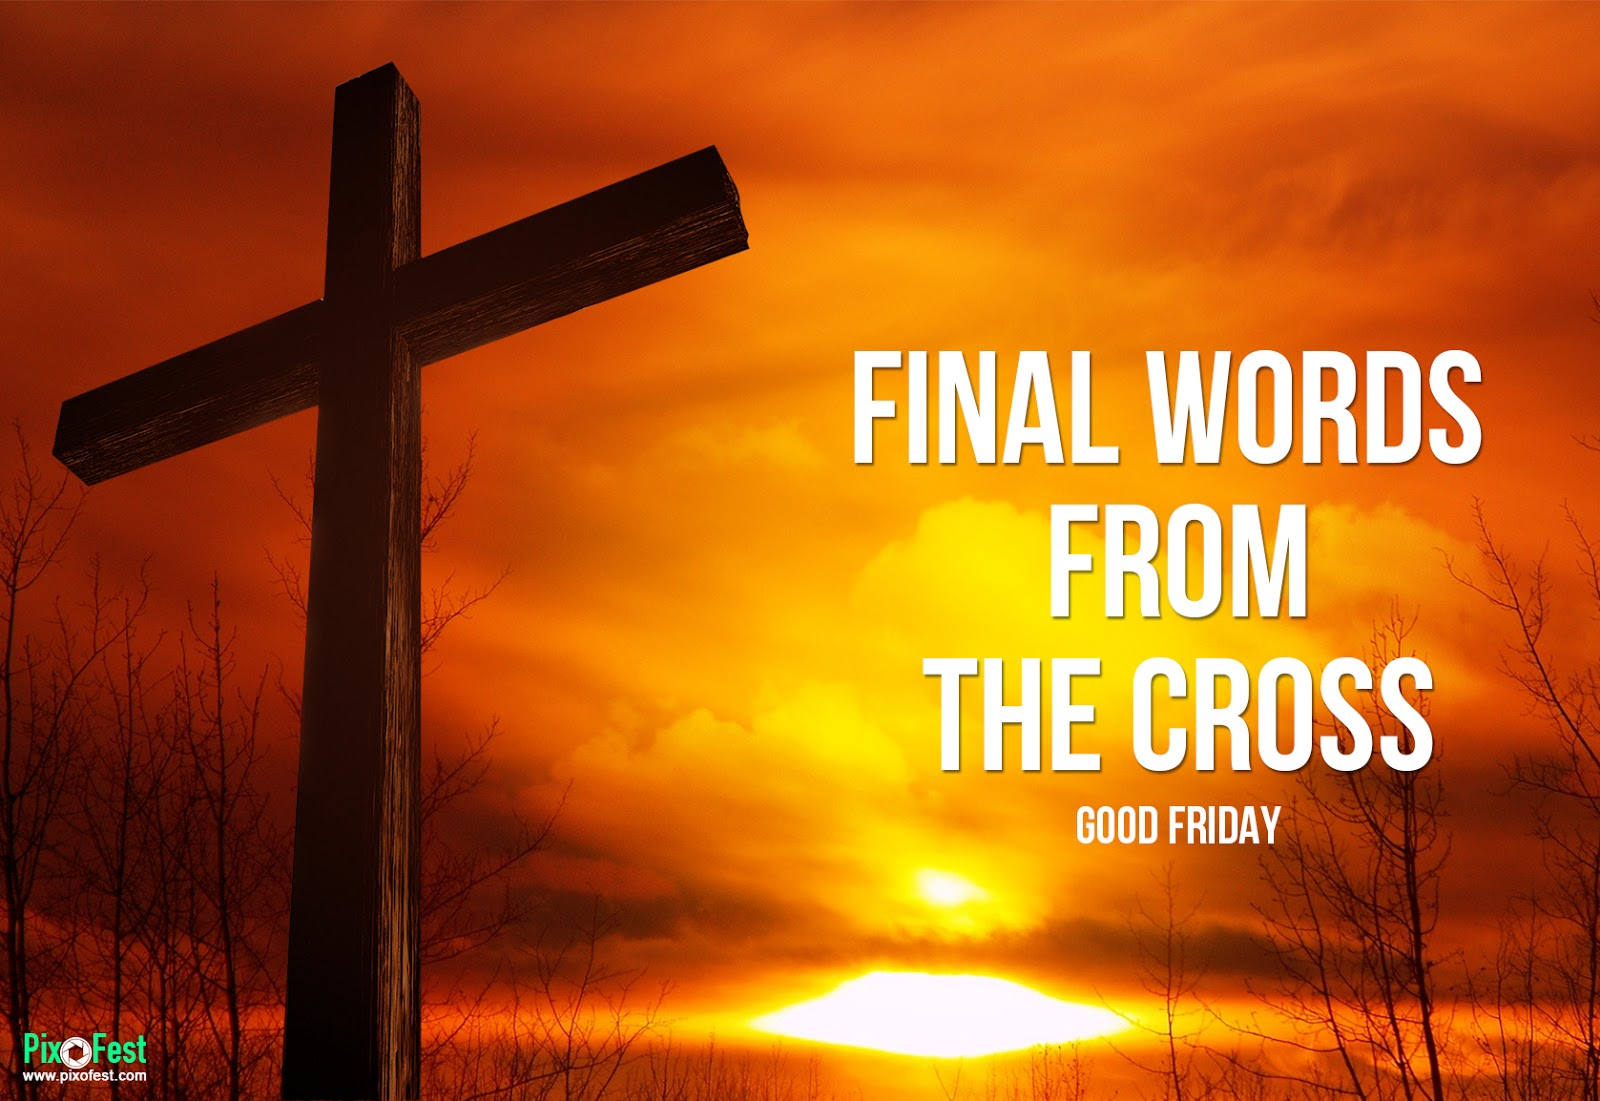 Good Friday,Good Friday wallpaper,Christian holiday , final words from the cross,Cross wallpaperGood Friday2019,Cross,crucifixion of Jesus,Holy Friday, Great Friday,Black Friday,Date of Good Friday, legal holiday,Baptism